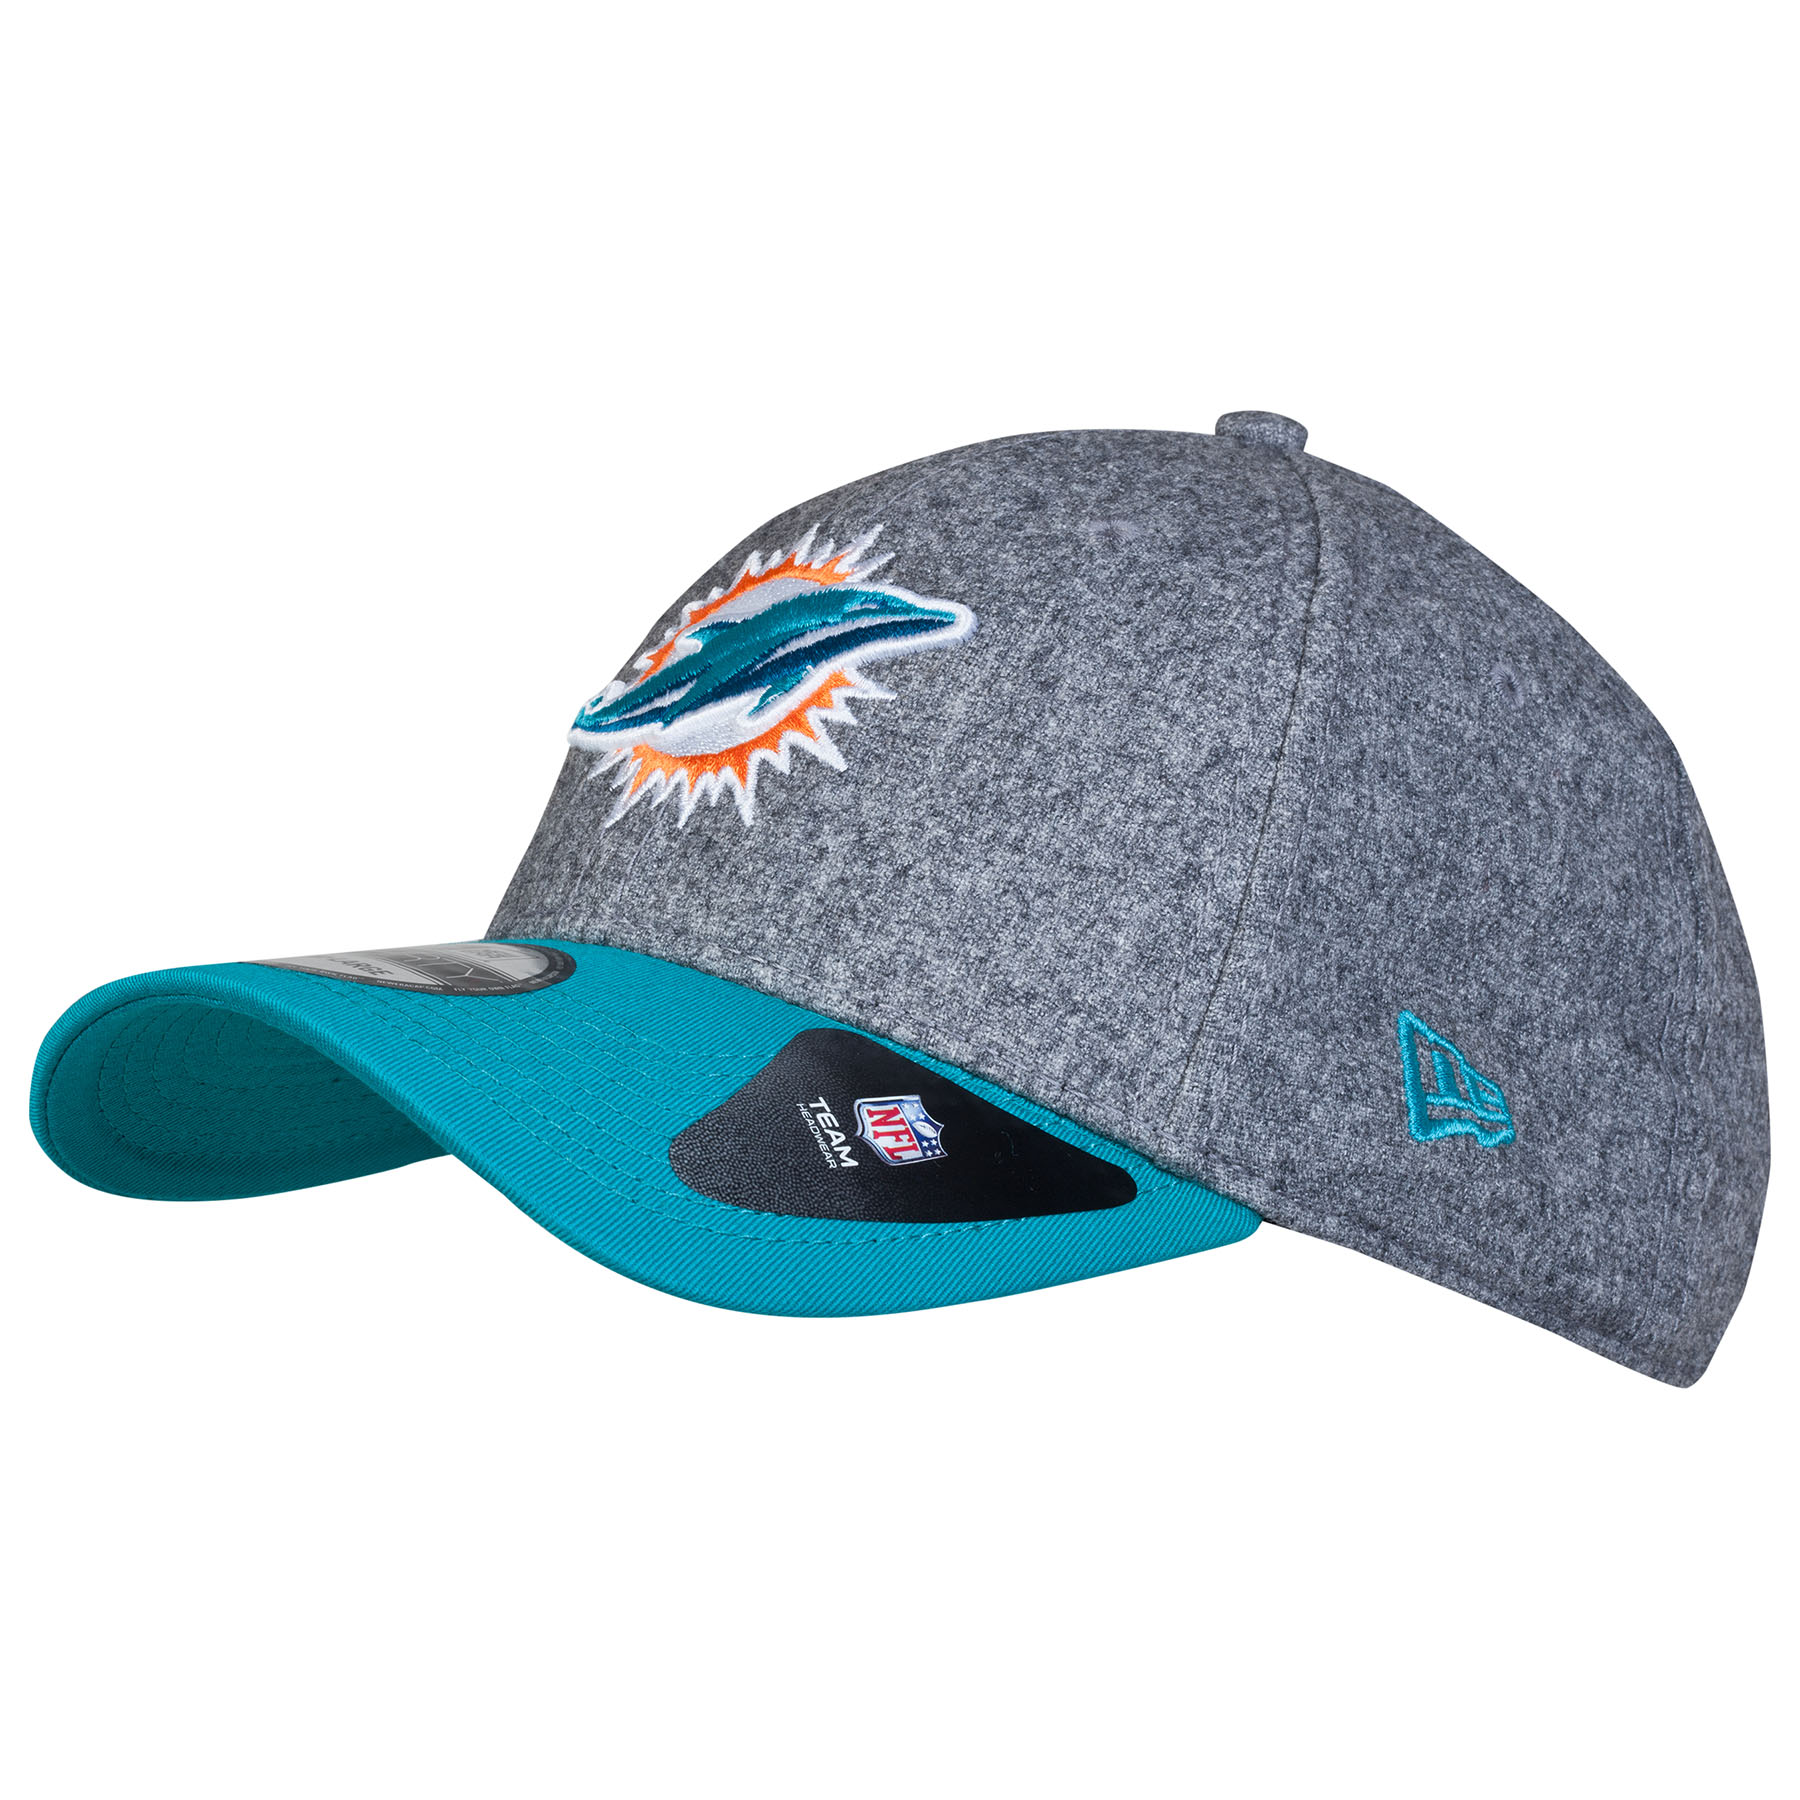 Miami Dolphins International Series 2014 New Era Meltop 39THIRTY Cap